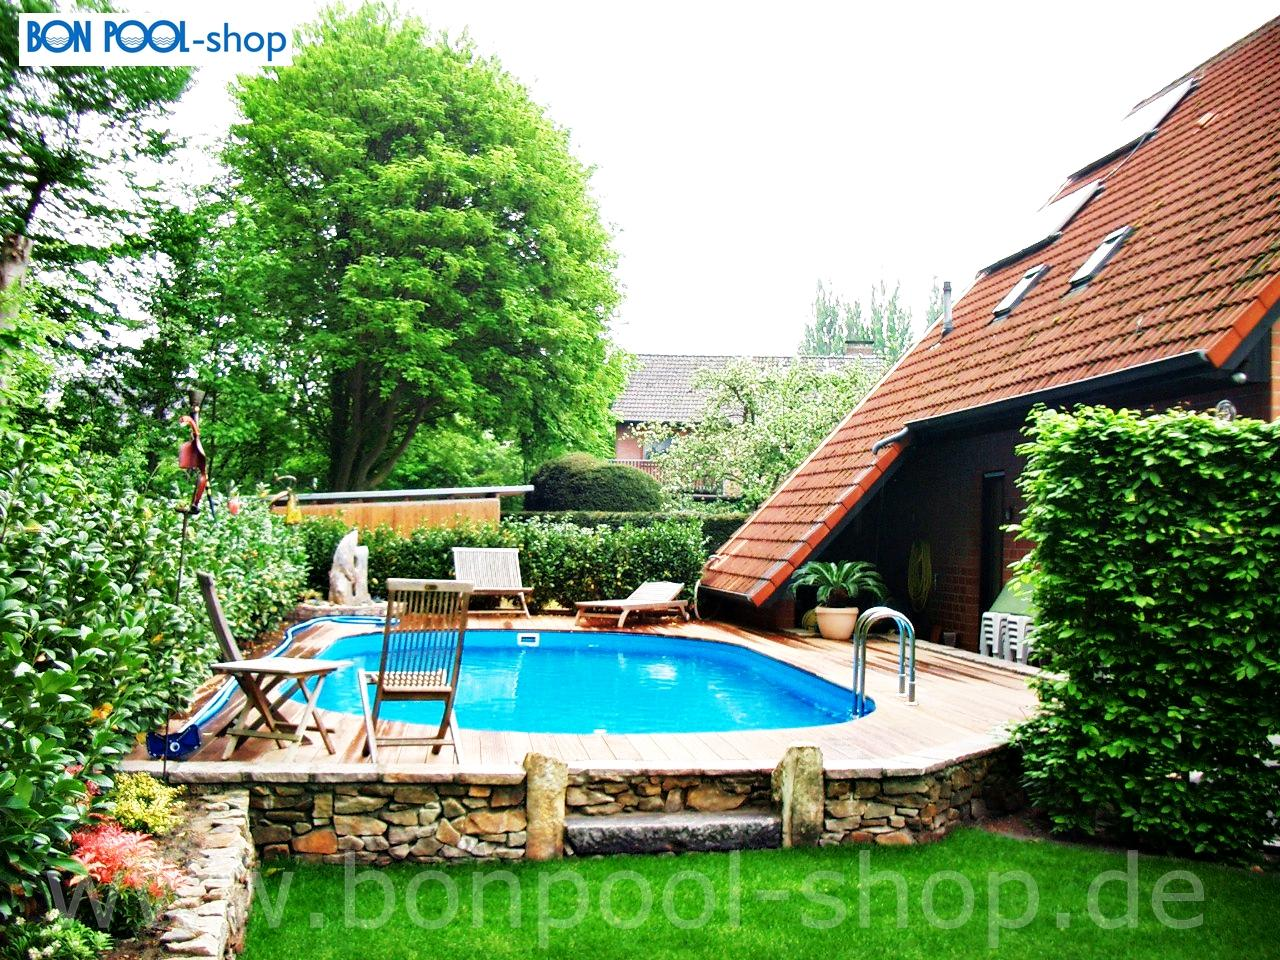 Brandneu Ovalbecken Set 630 x 360, 150 Tief Ovalpool BON POOL BN37